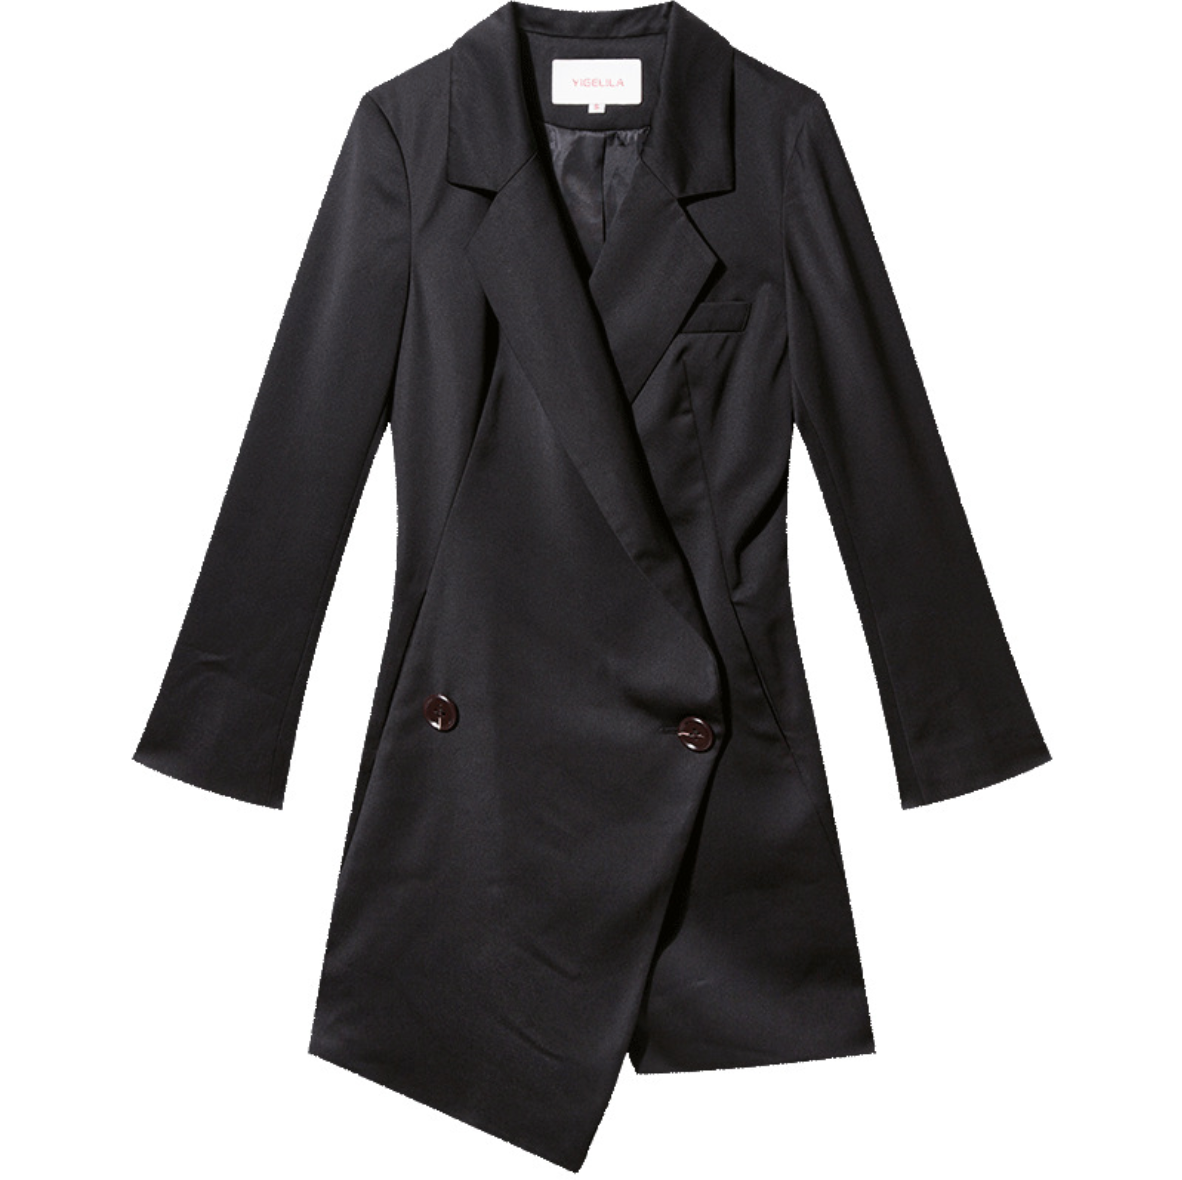 Sexy Black V Neckline Long Sleeves Button Up Detailing Coat